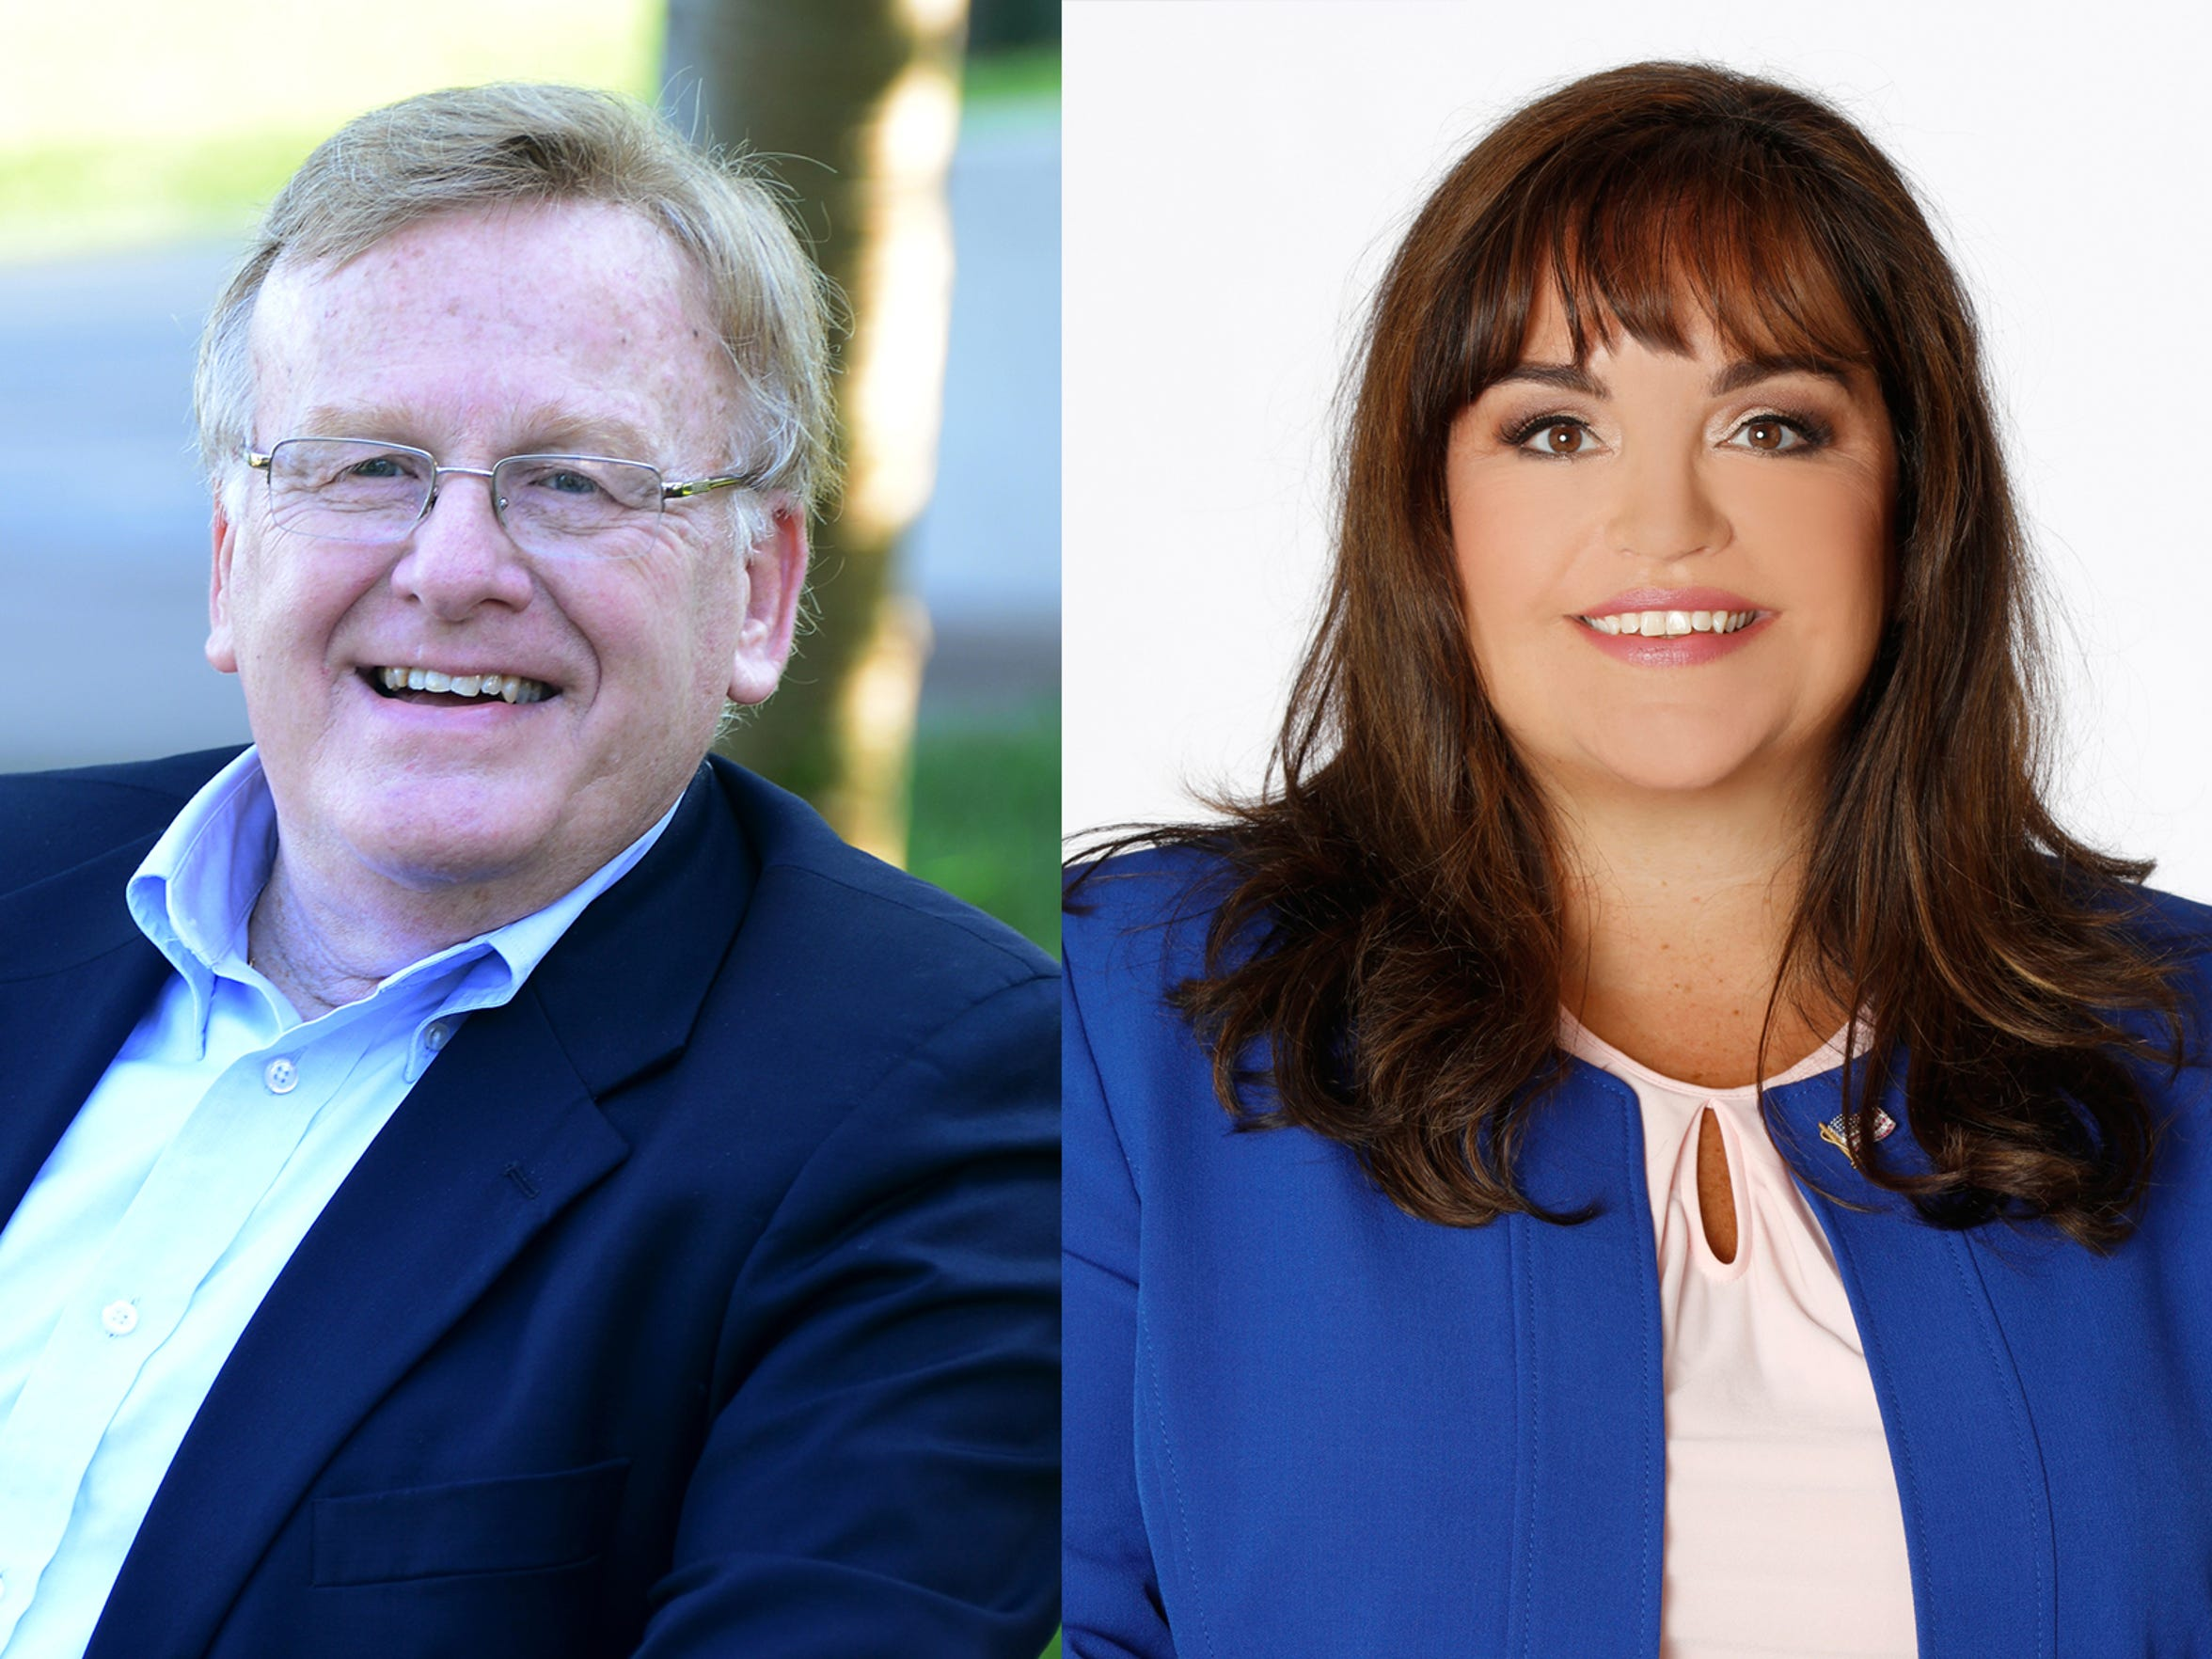 Ken McClure and Kristi Fulnecky are running for mayor.